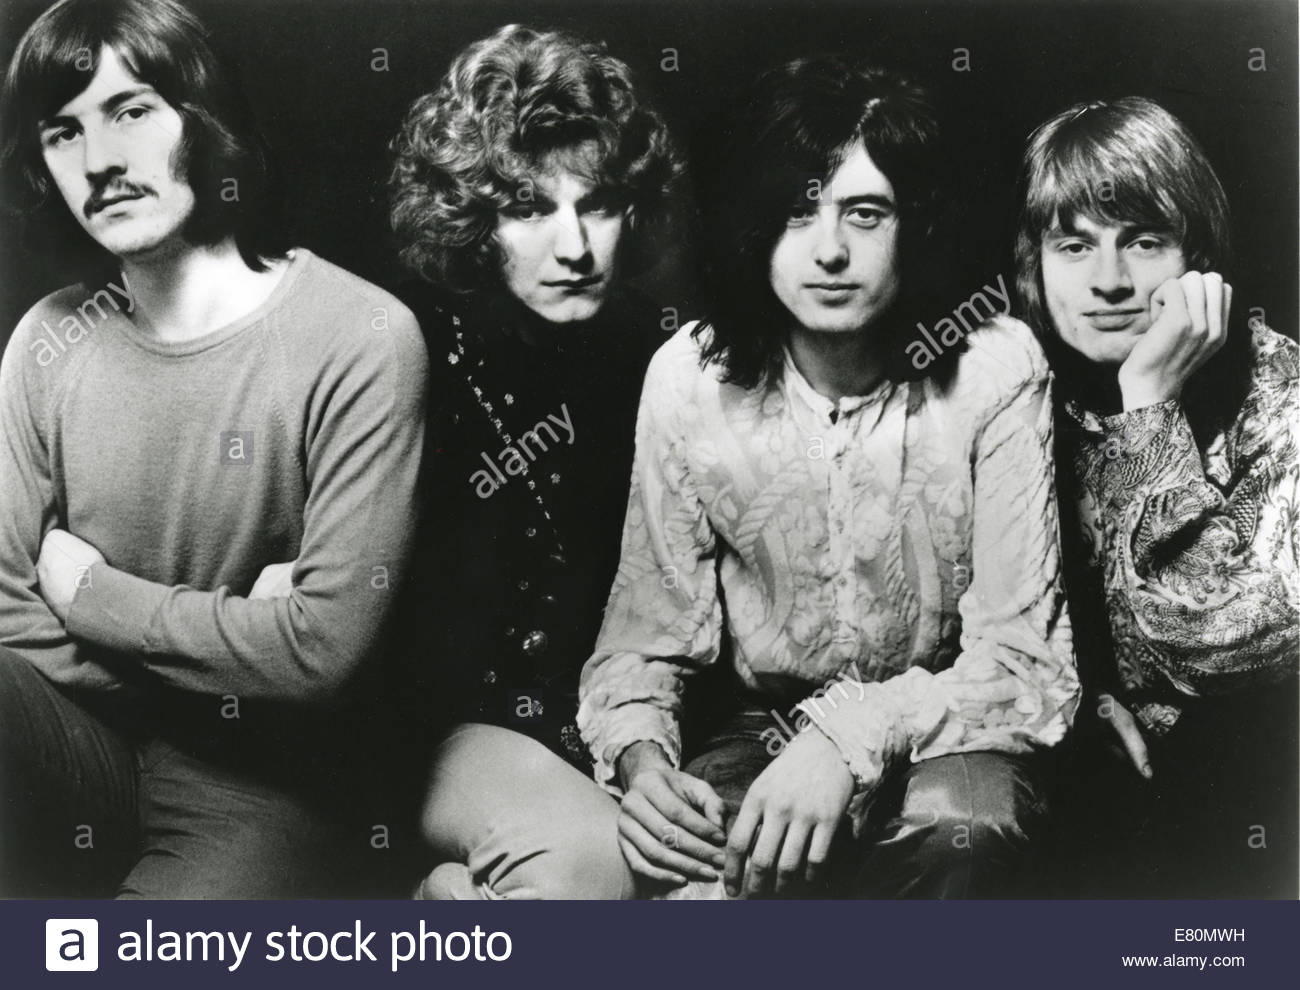 LED ZEPPELIN, circa 1969. L-R:  John Bonham, Robert Plant, Jimmy Page, John Paul Jones. - Stock Image